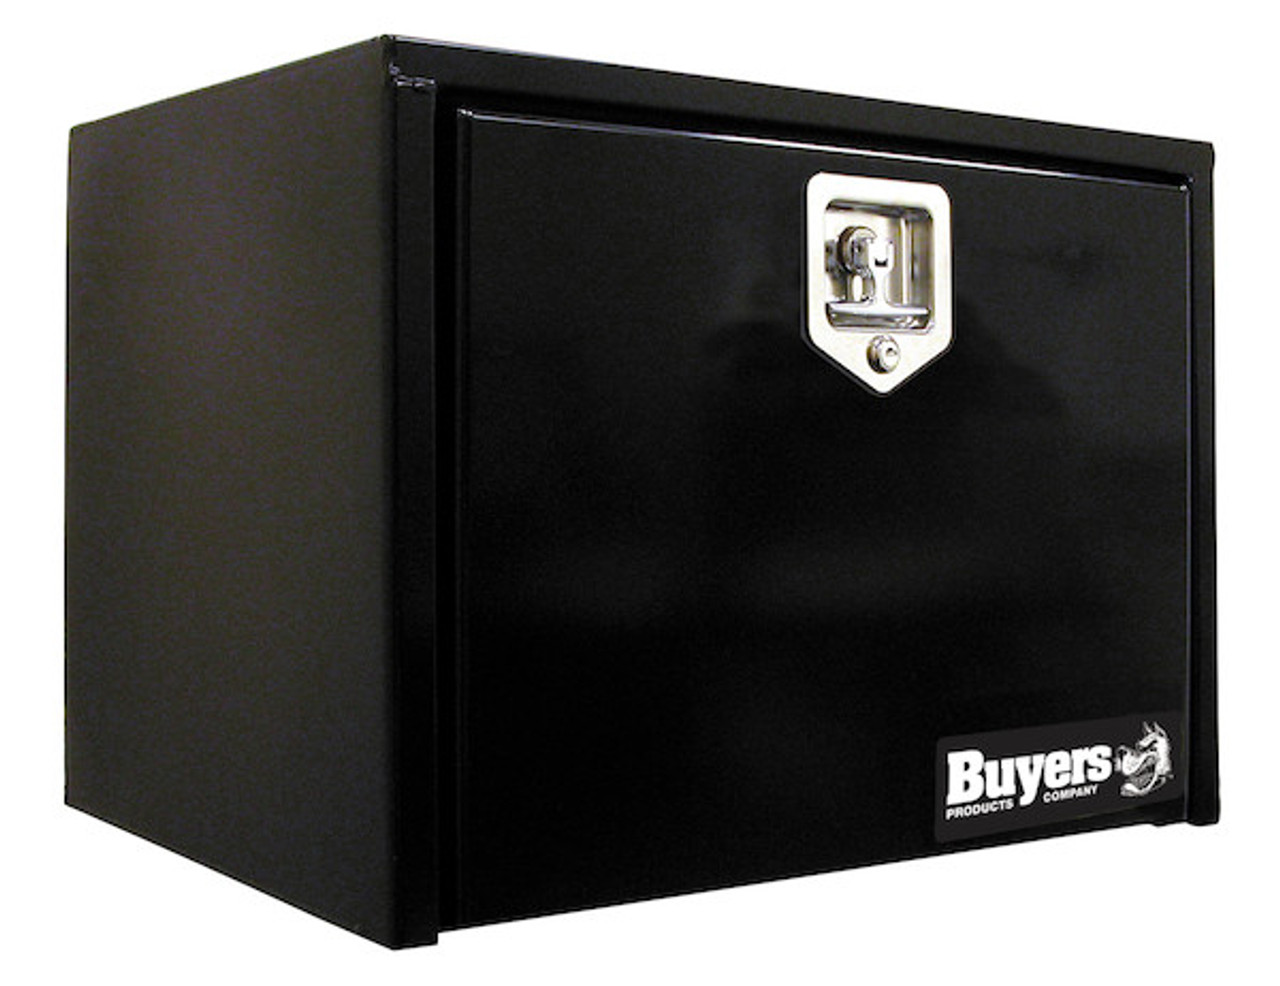 """1703310 BUYERS PRODUCTS BLACK STEEL UNDERBODY TRUCK TOOLBOX WITH T-LATCH 15""""HX10""""DX15""""W"""